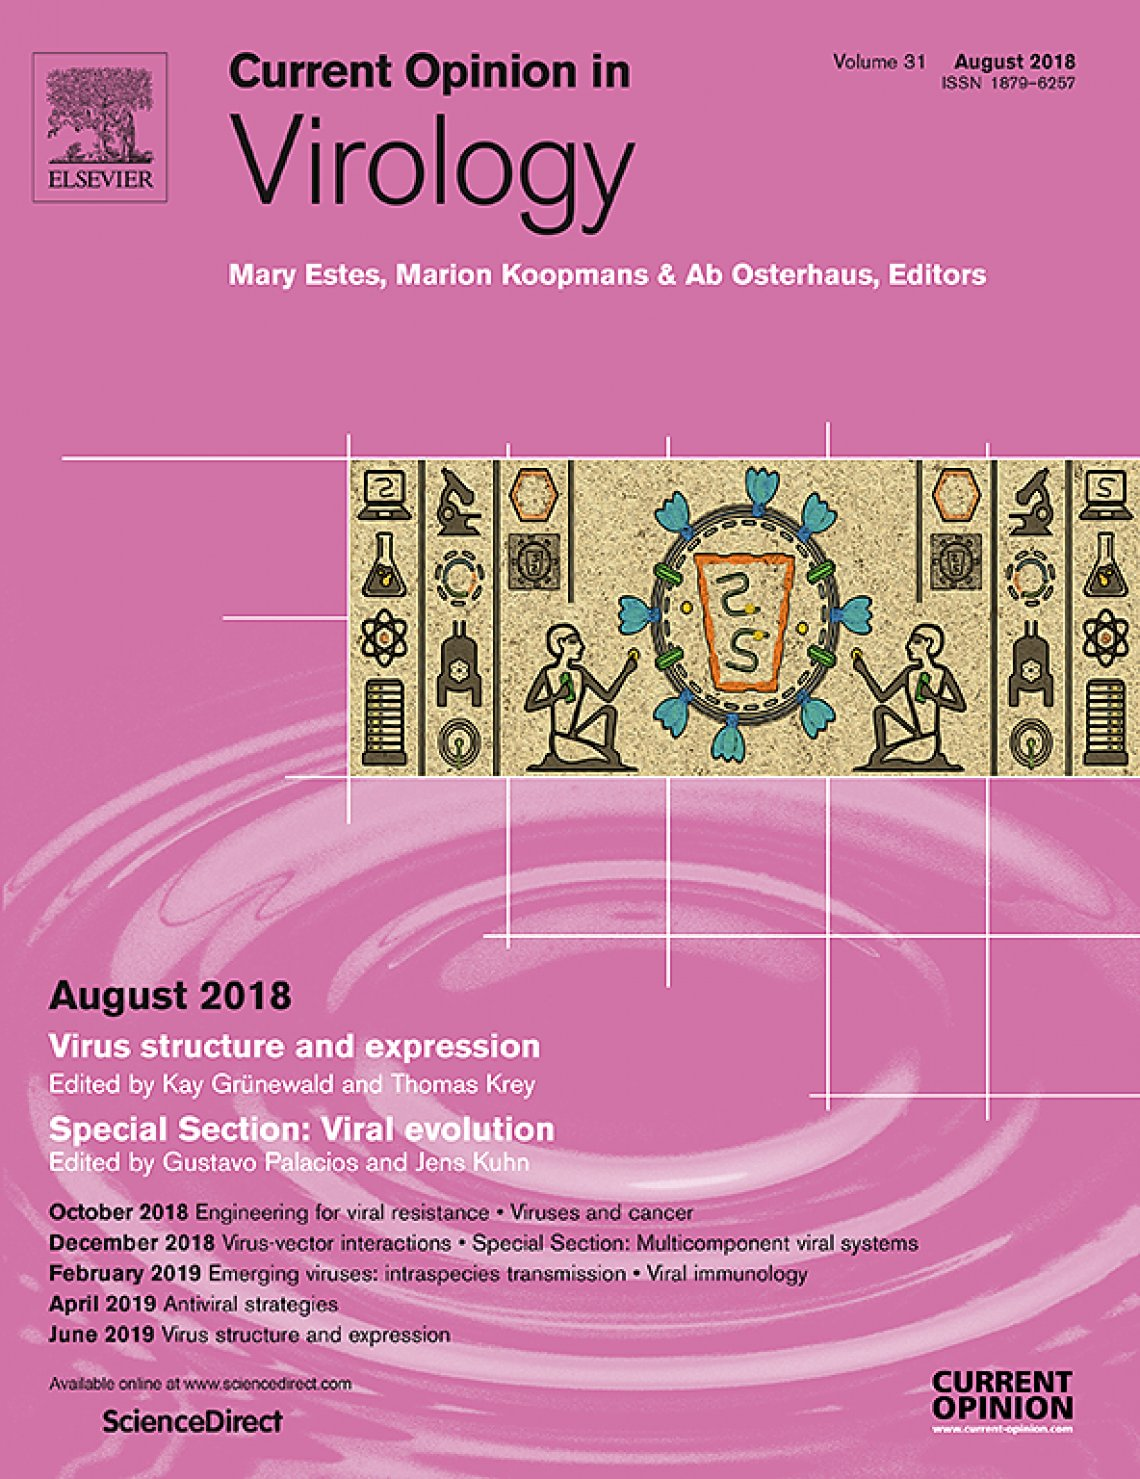 Current Opinion in Virology